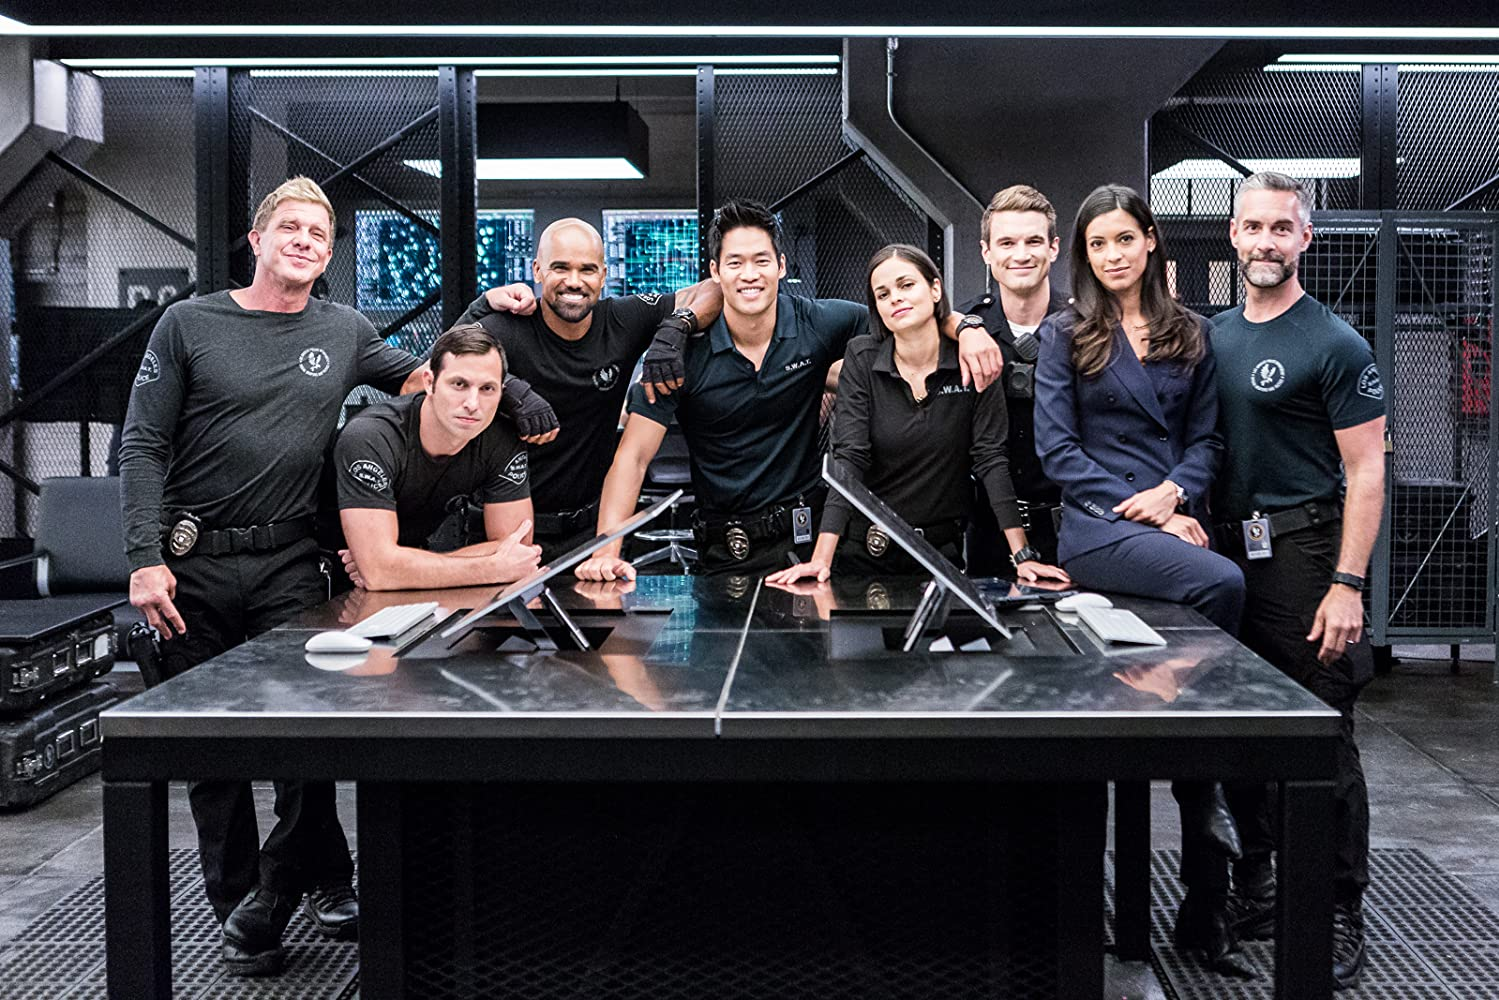 Shemar Moore, Jay Harrington, Kenny Johnson, Lina Esco, Stephanie Sigman, Juan Javier Cardenas, David Lim, and Alex Russell in S.W.A.T. (2017)